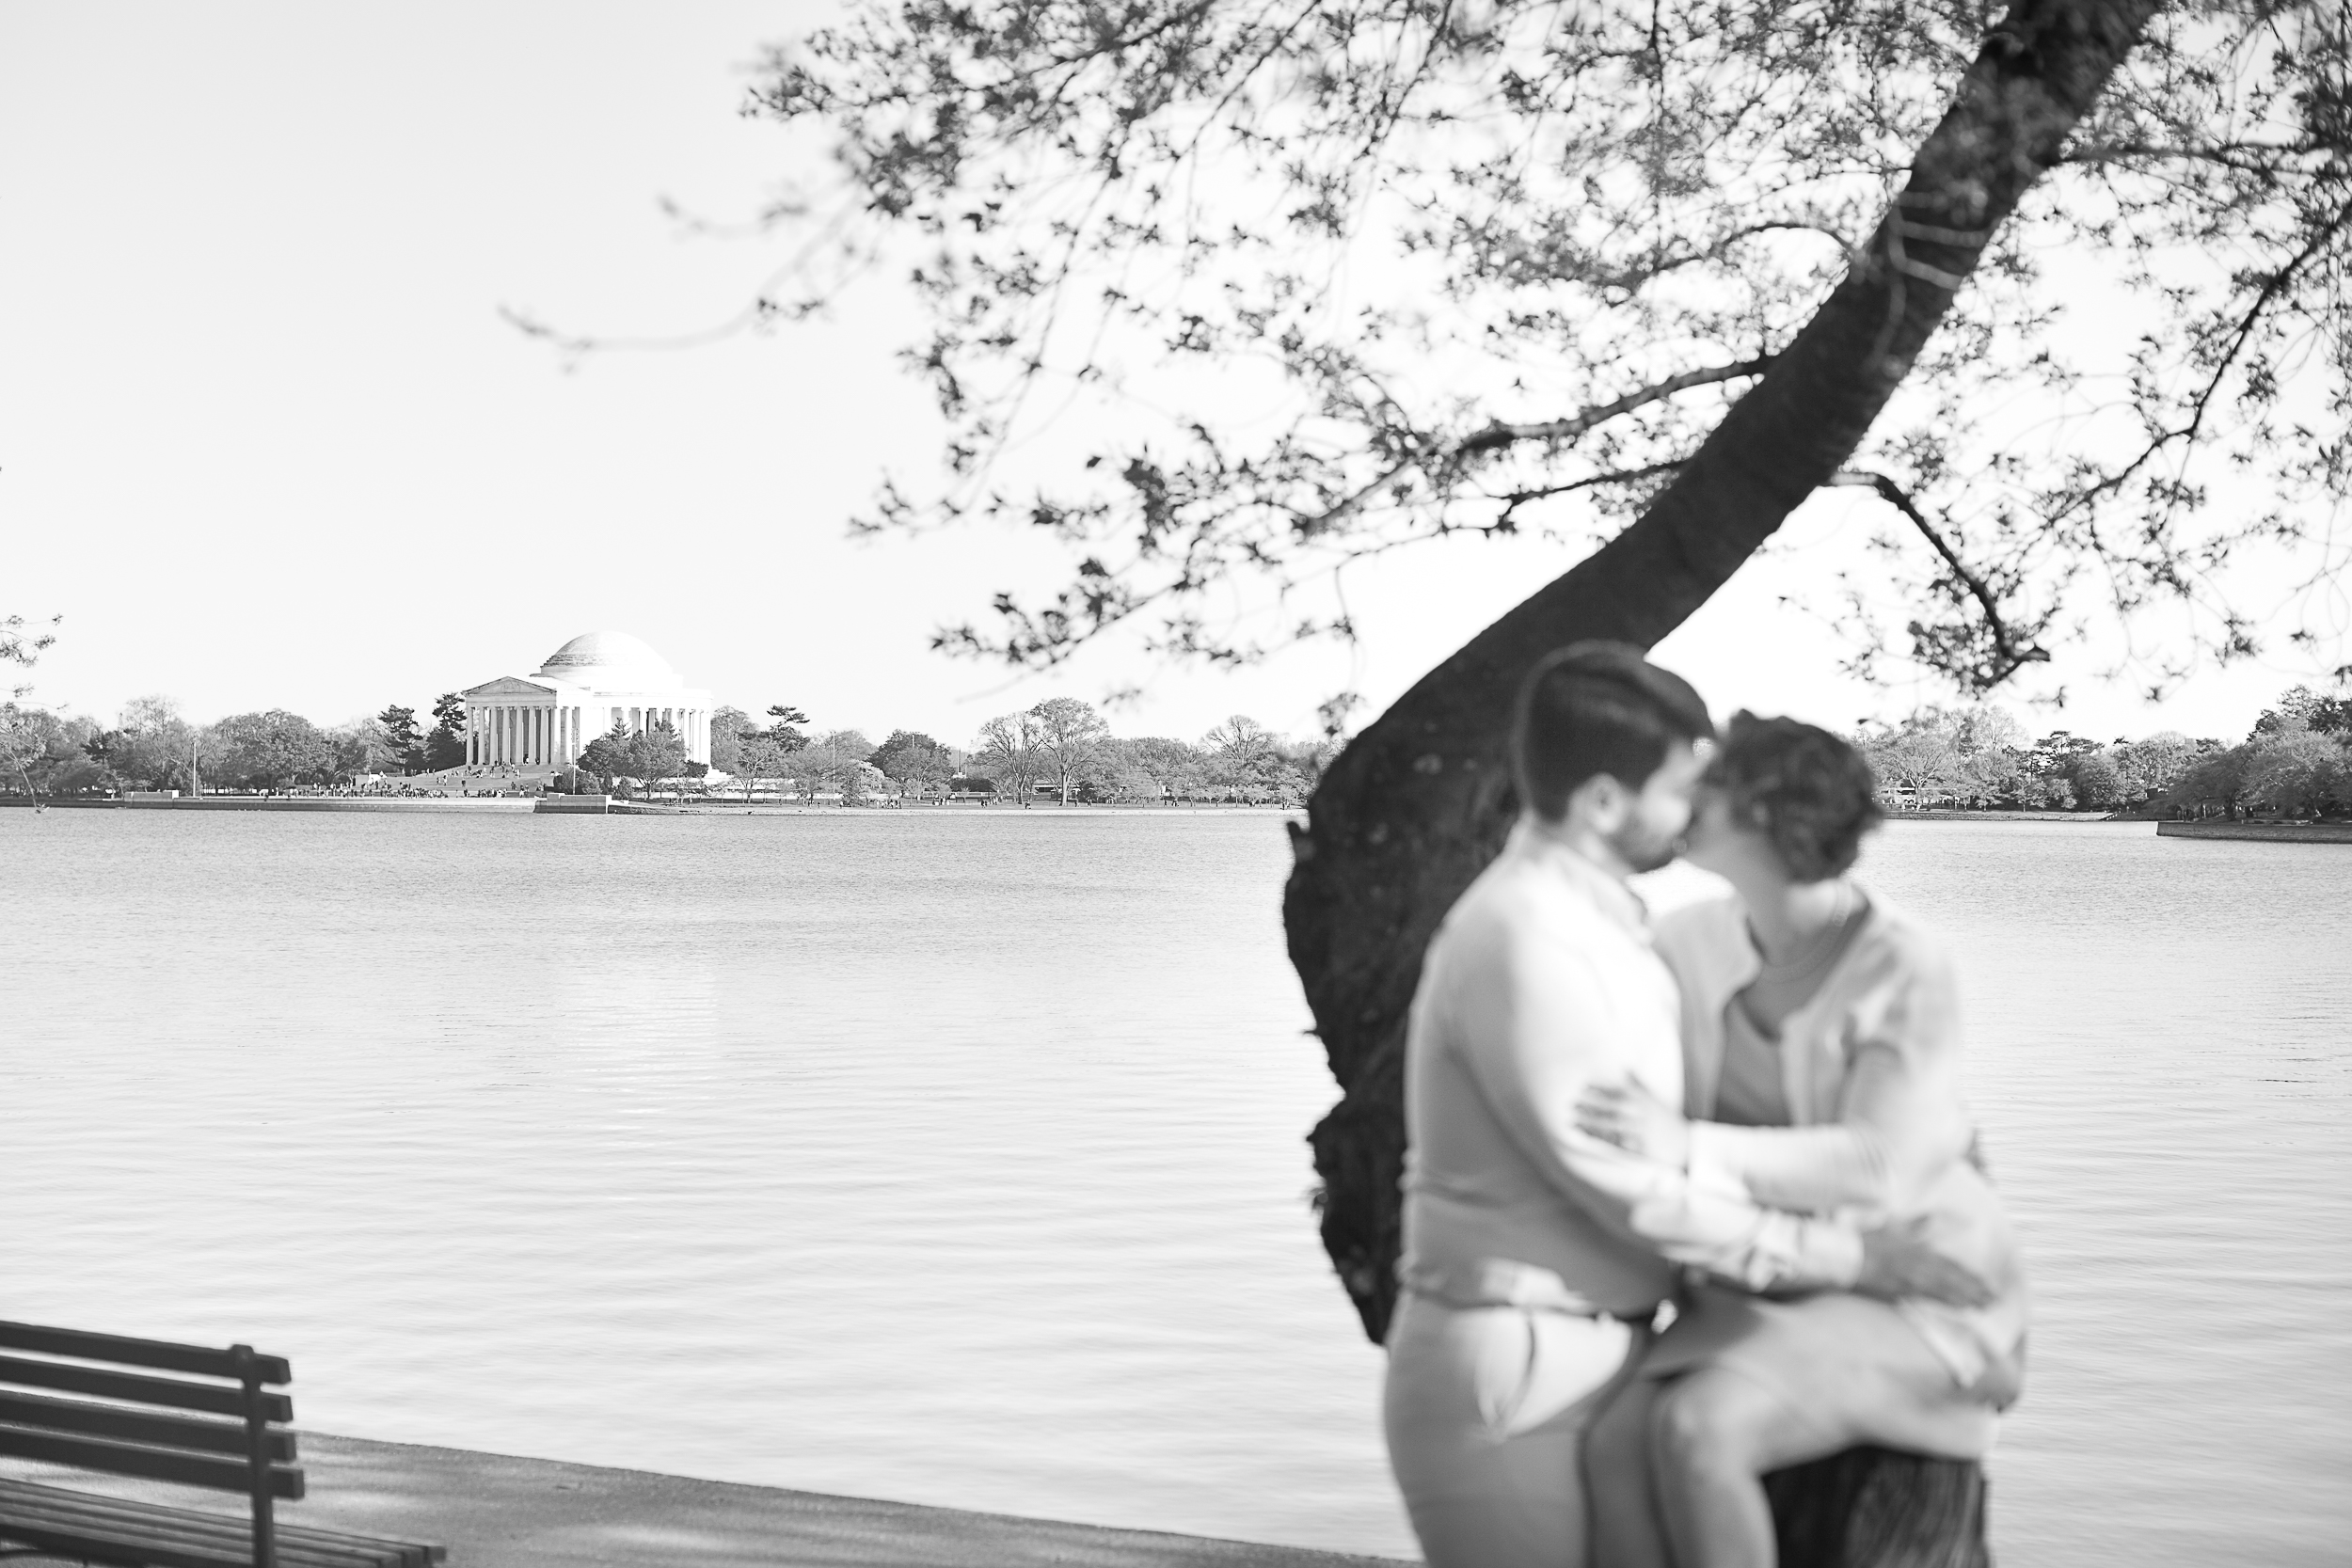 Kathryn-Stephen-Engagement-Kim-Pham-Clark-Photography-05.jpg